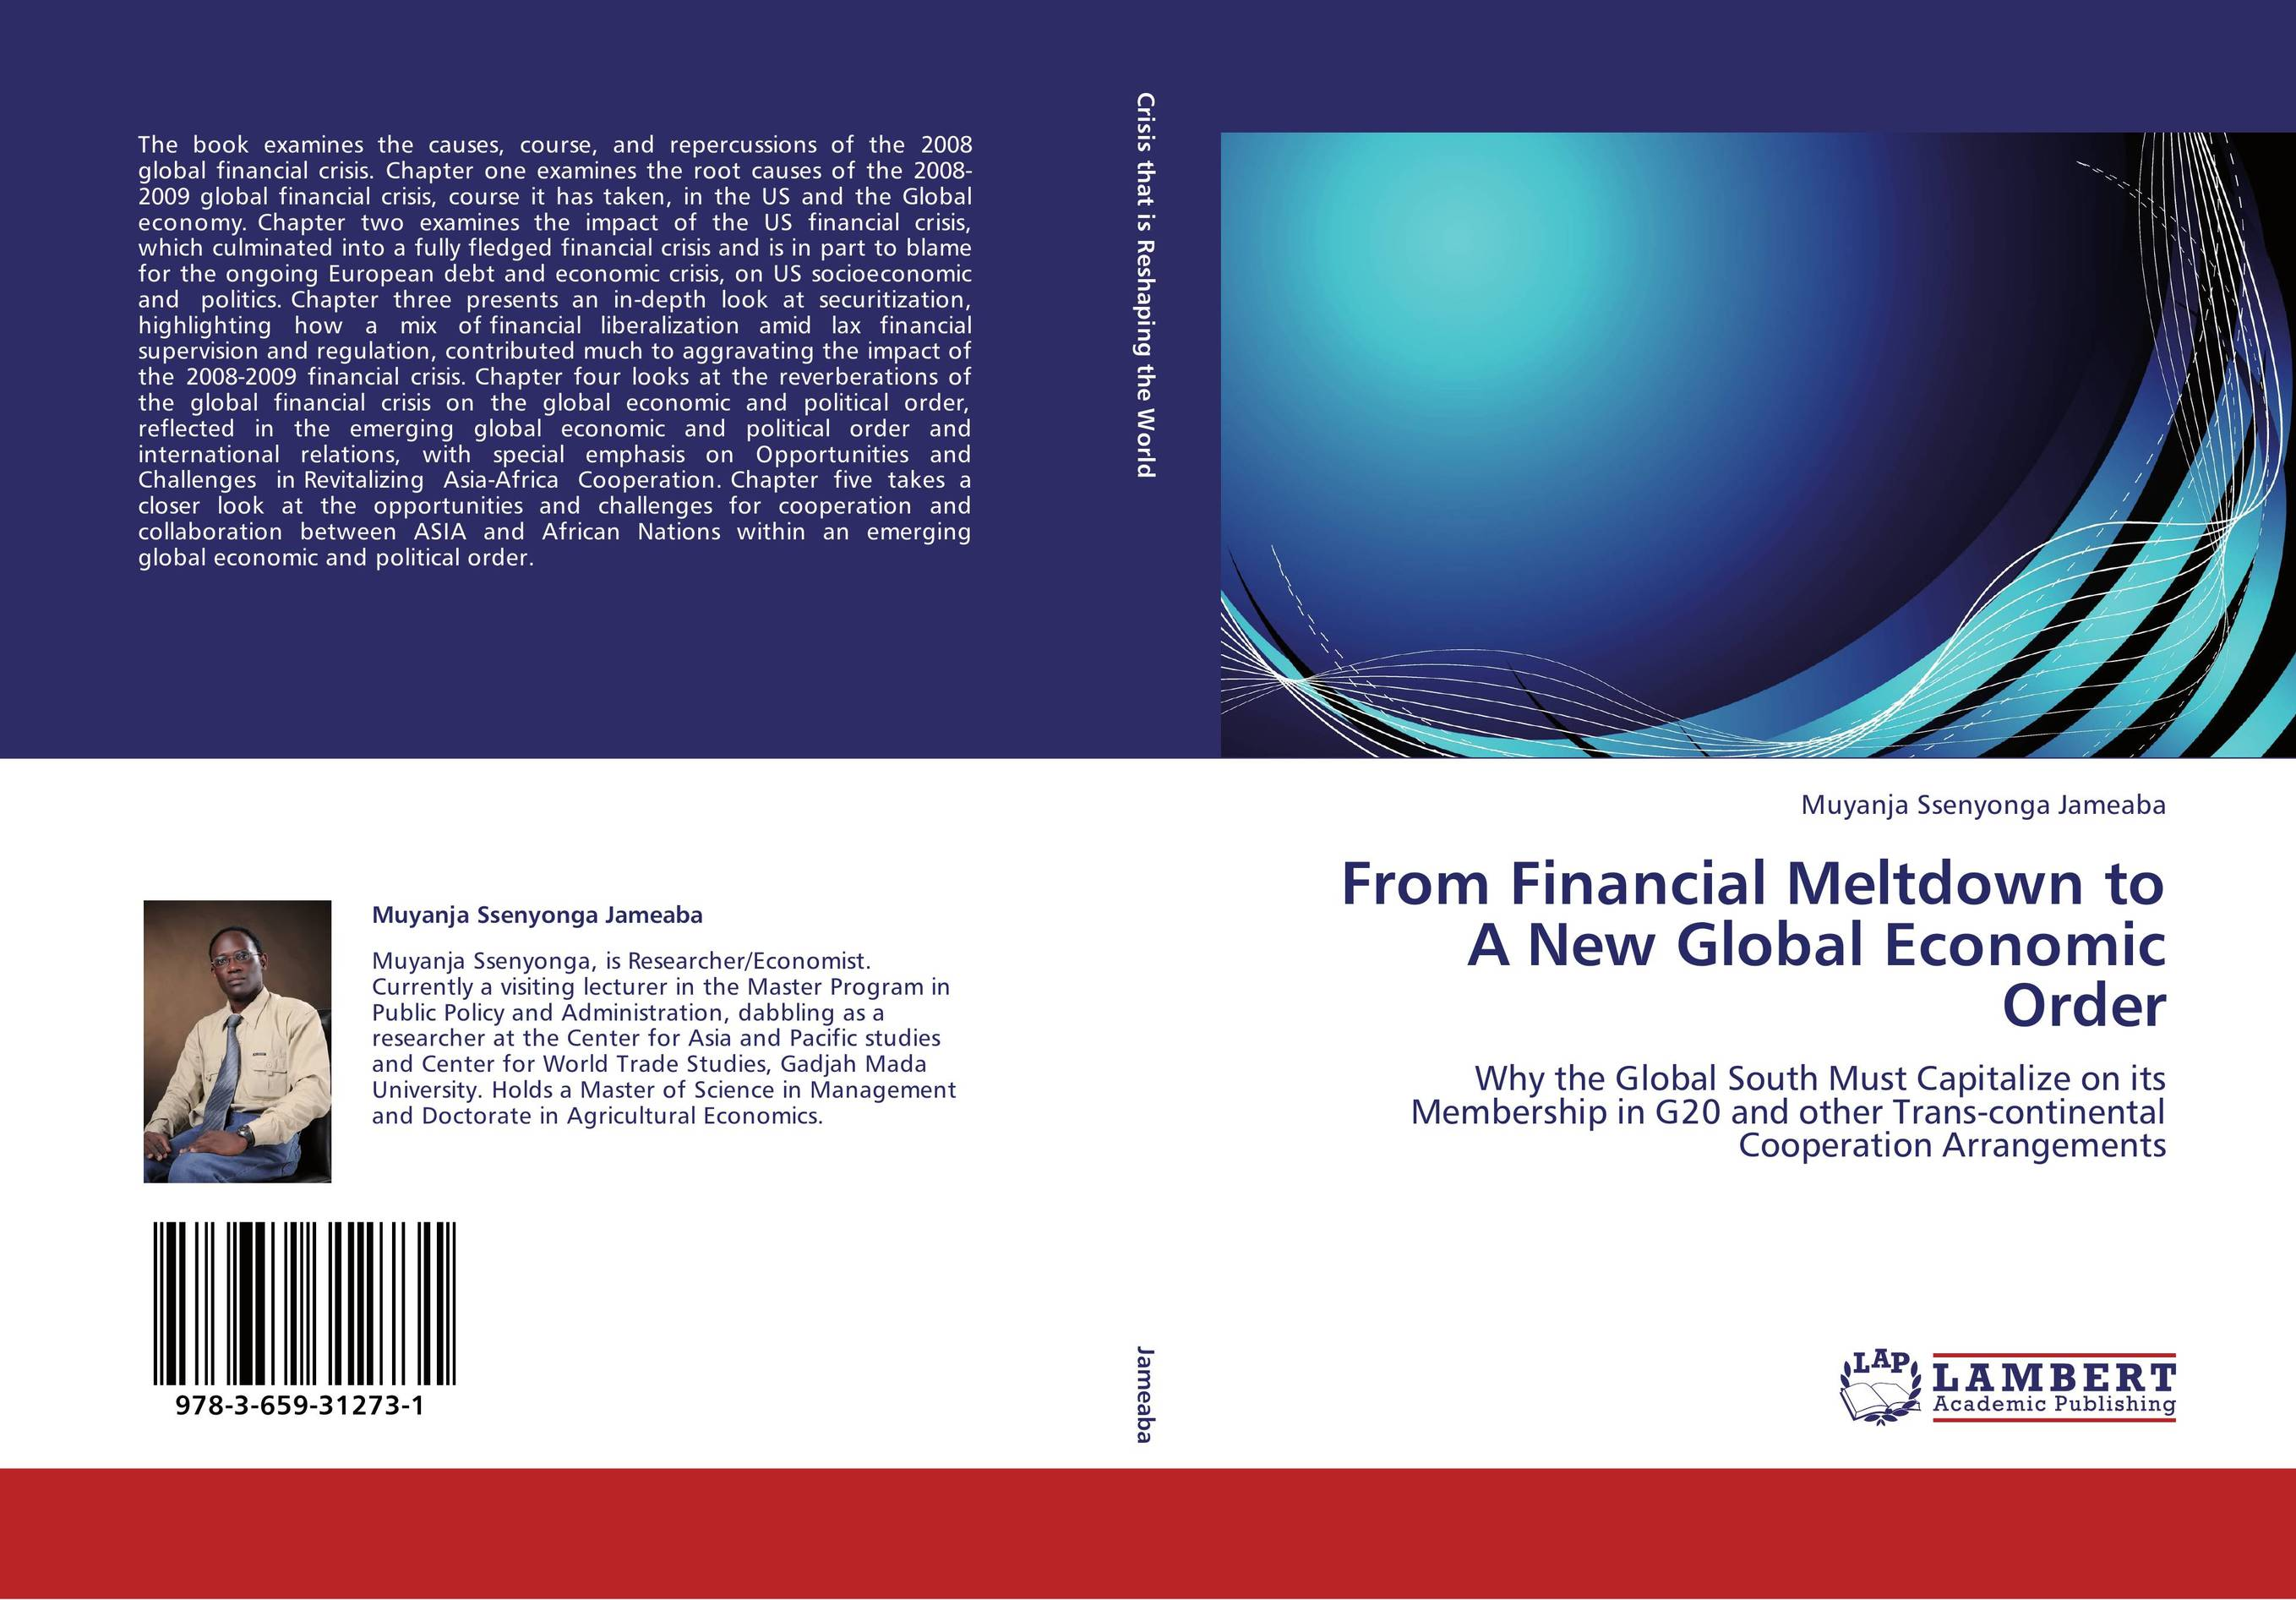 impact of global financial on capital These decisions are likely to create long-term impacts not only for banks, but also for london as a global financial center eventually these shifts could contribute to fragmentation of banking and capital markets businesses on the continent, with unforeseen implications.